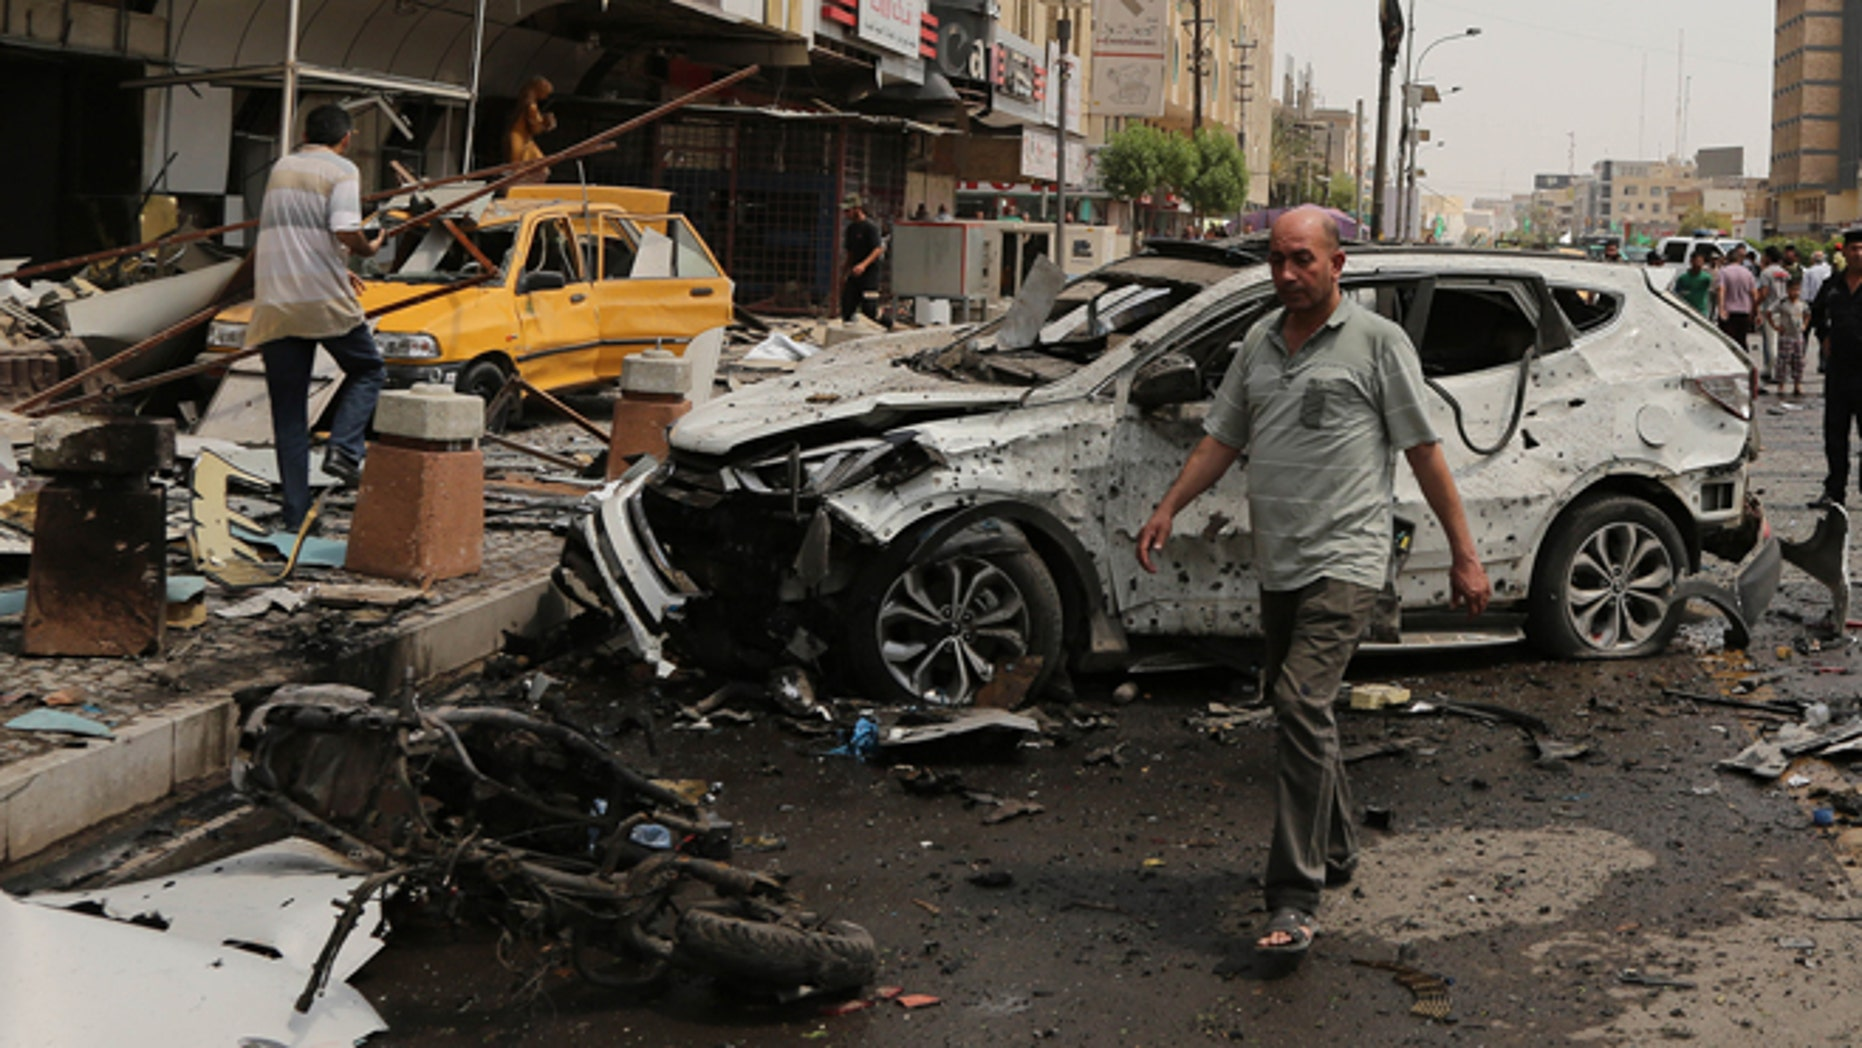 May 9, 2015: Civilians and security forces inspect the scene of a car bomb explosion in Karrada neighborhood, Baghdad, Iraq. (AP)